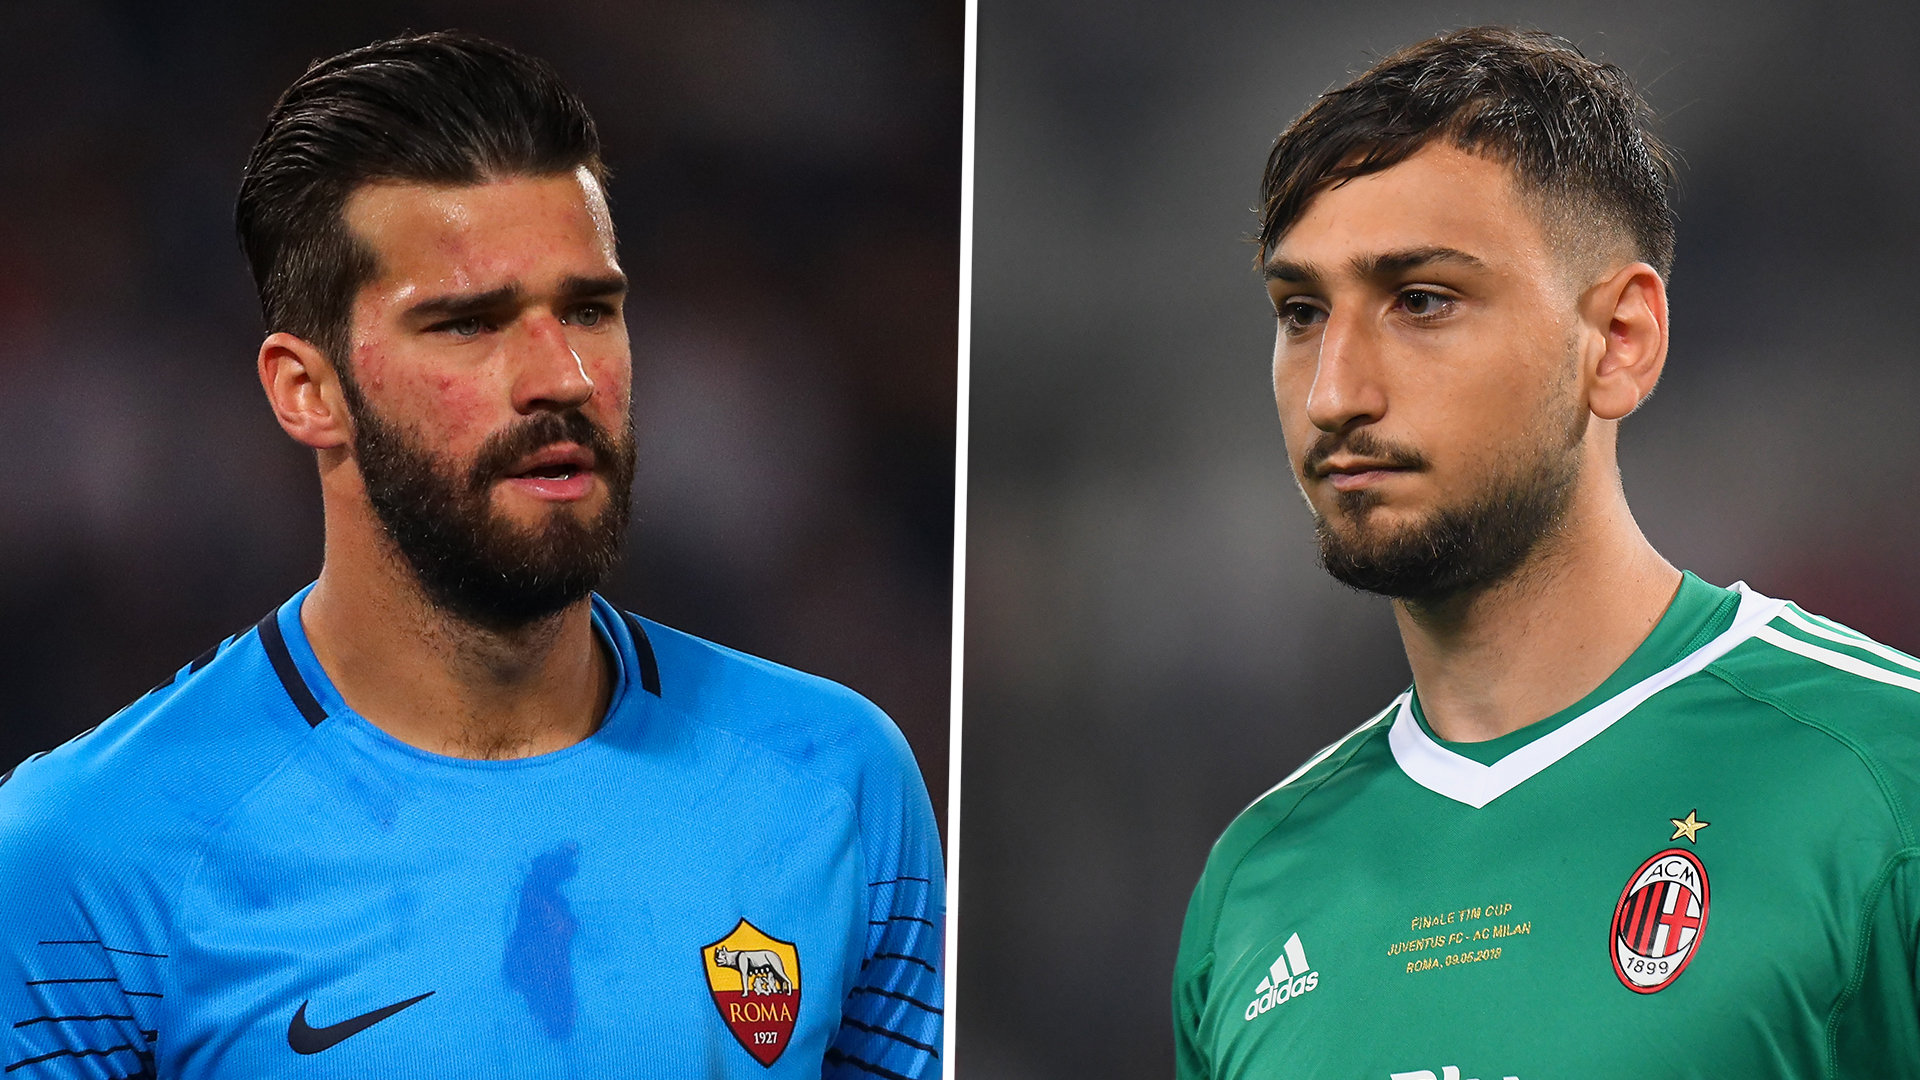 Liverpool make €70m bid for Roma's Alisson